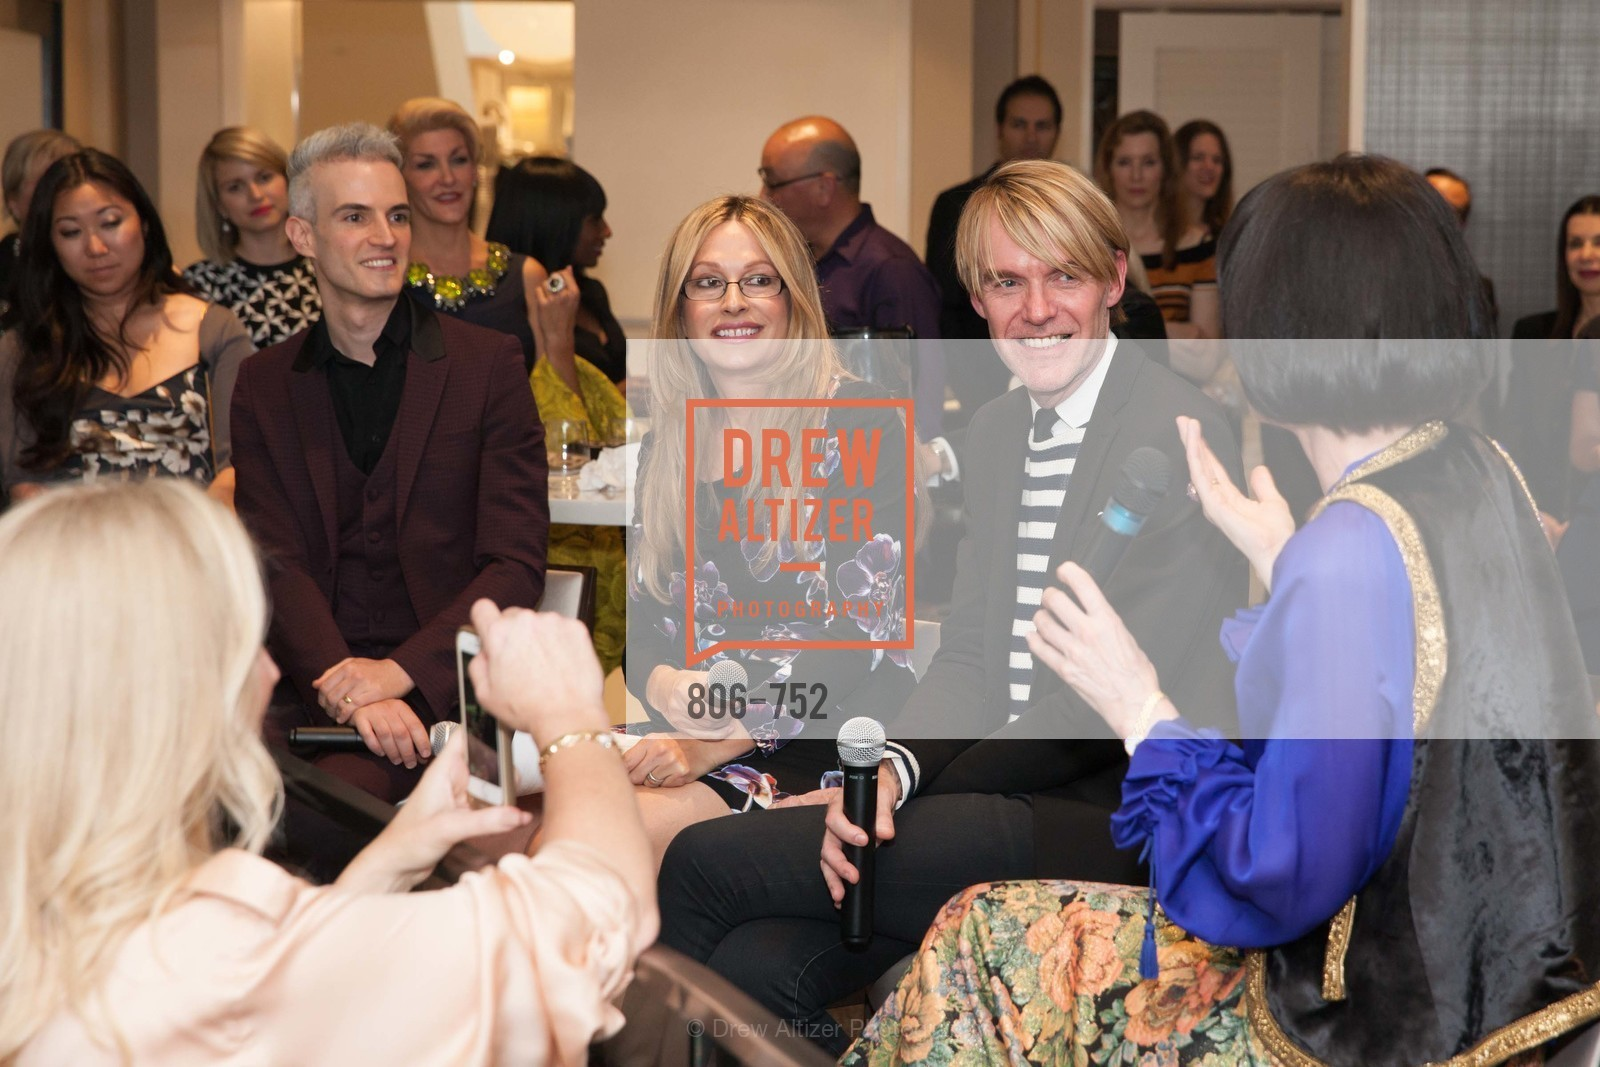 Frederic Aranda, Carolyne Zinko, Ken Downing, Electric Fashion Book Signing with Christine Suppes & Ken Downing at THE ROTUNDA, NEIMAN MARCUS, Neiman Marcus, Rotunda, May 27th, 2015,Drew Altizer, Drew Altizer Photography, full-service agency, private events, San Francisco photographer, photographer california